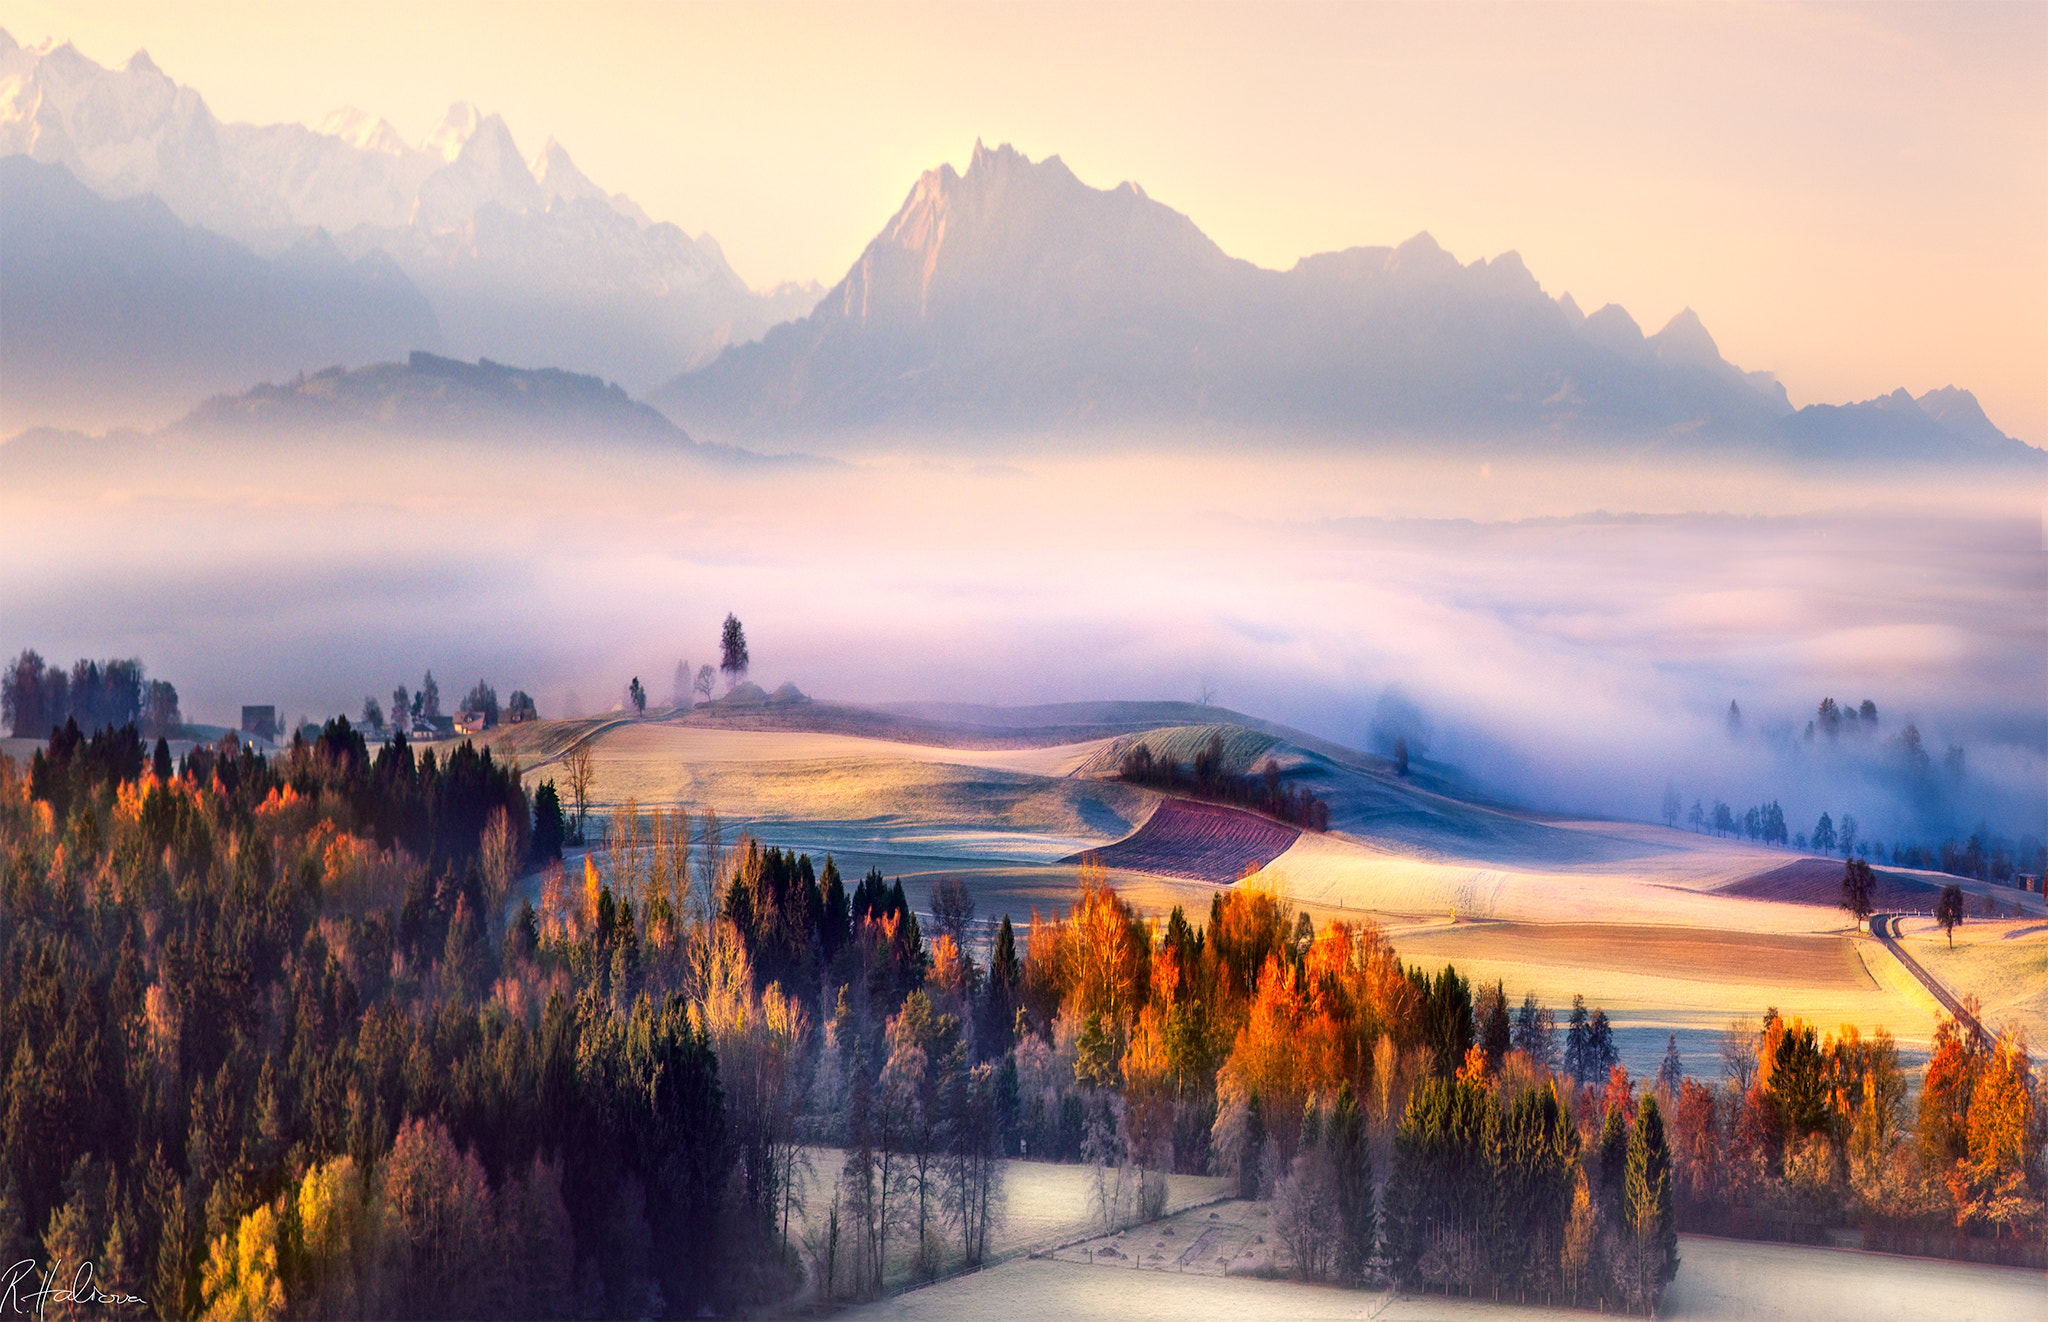 Photograph Autumn Morning by Robin Halioua on 500px